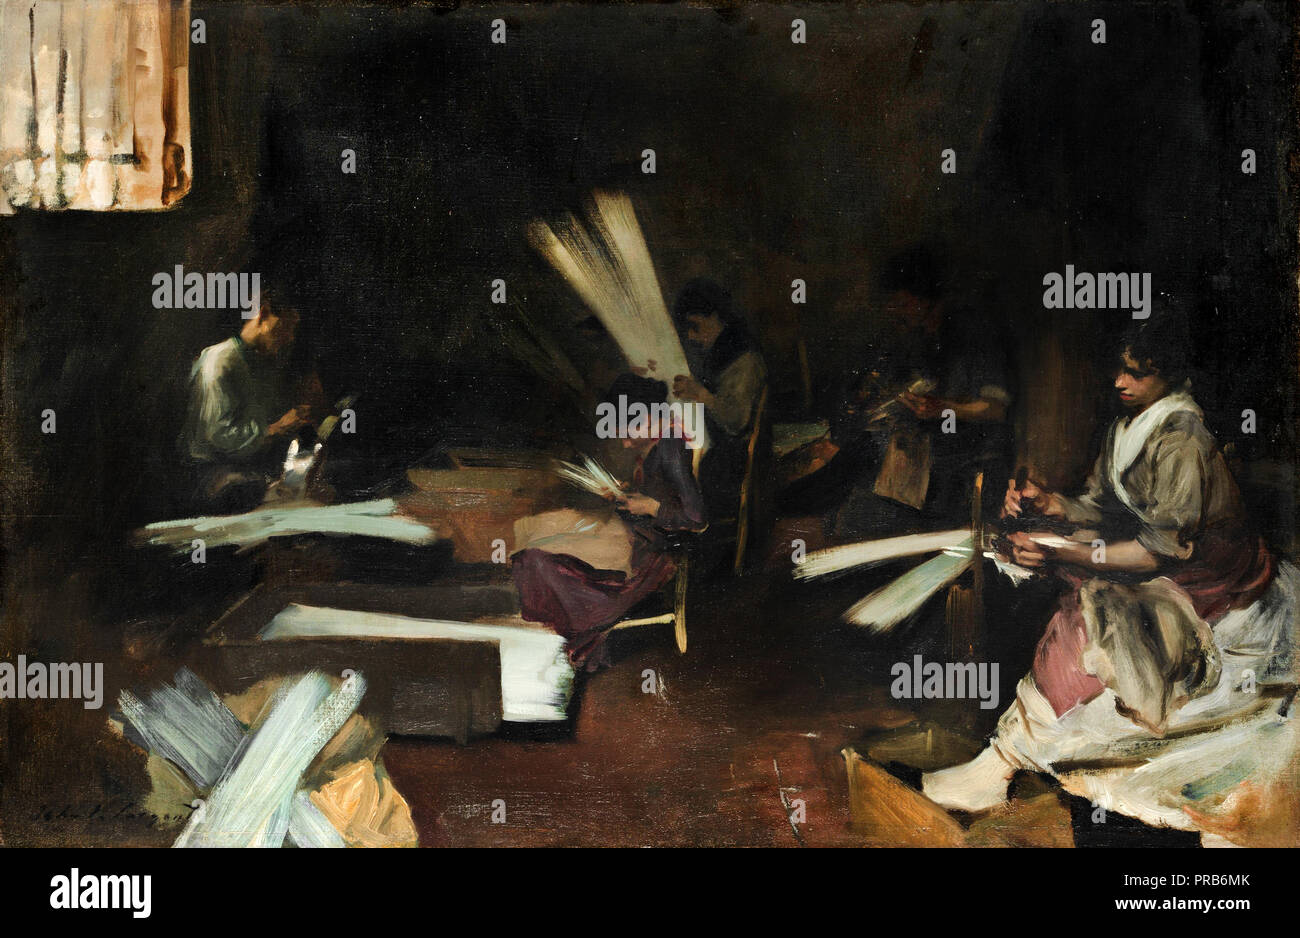 John Singer Sargent, Venetian Glass Workers, Circa 1880-1882, Oil on canvas, Art Institute of Chicago, USA. - Stock Image